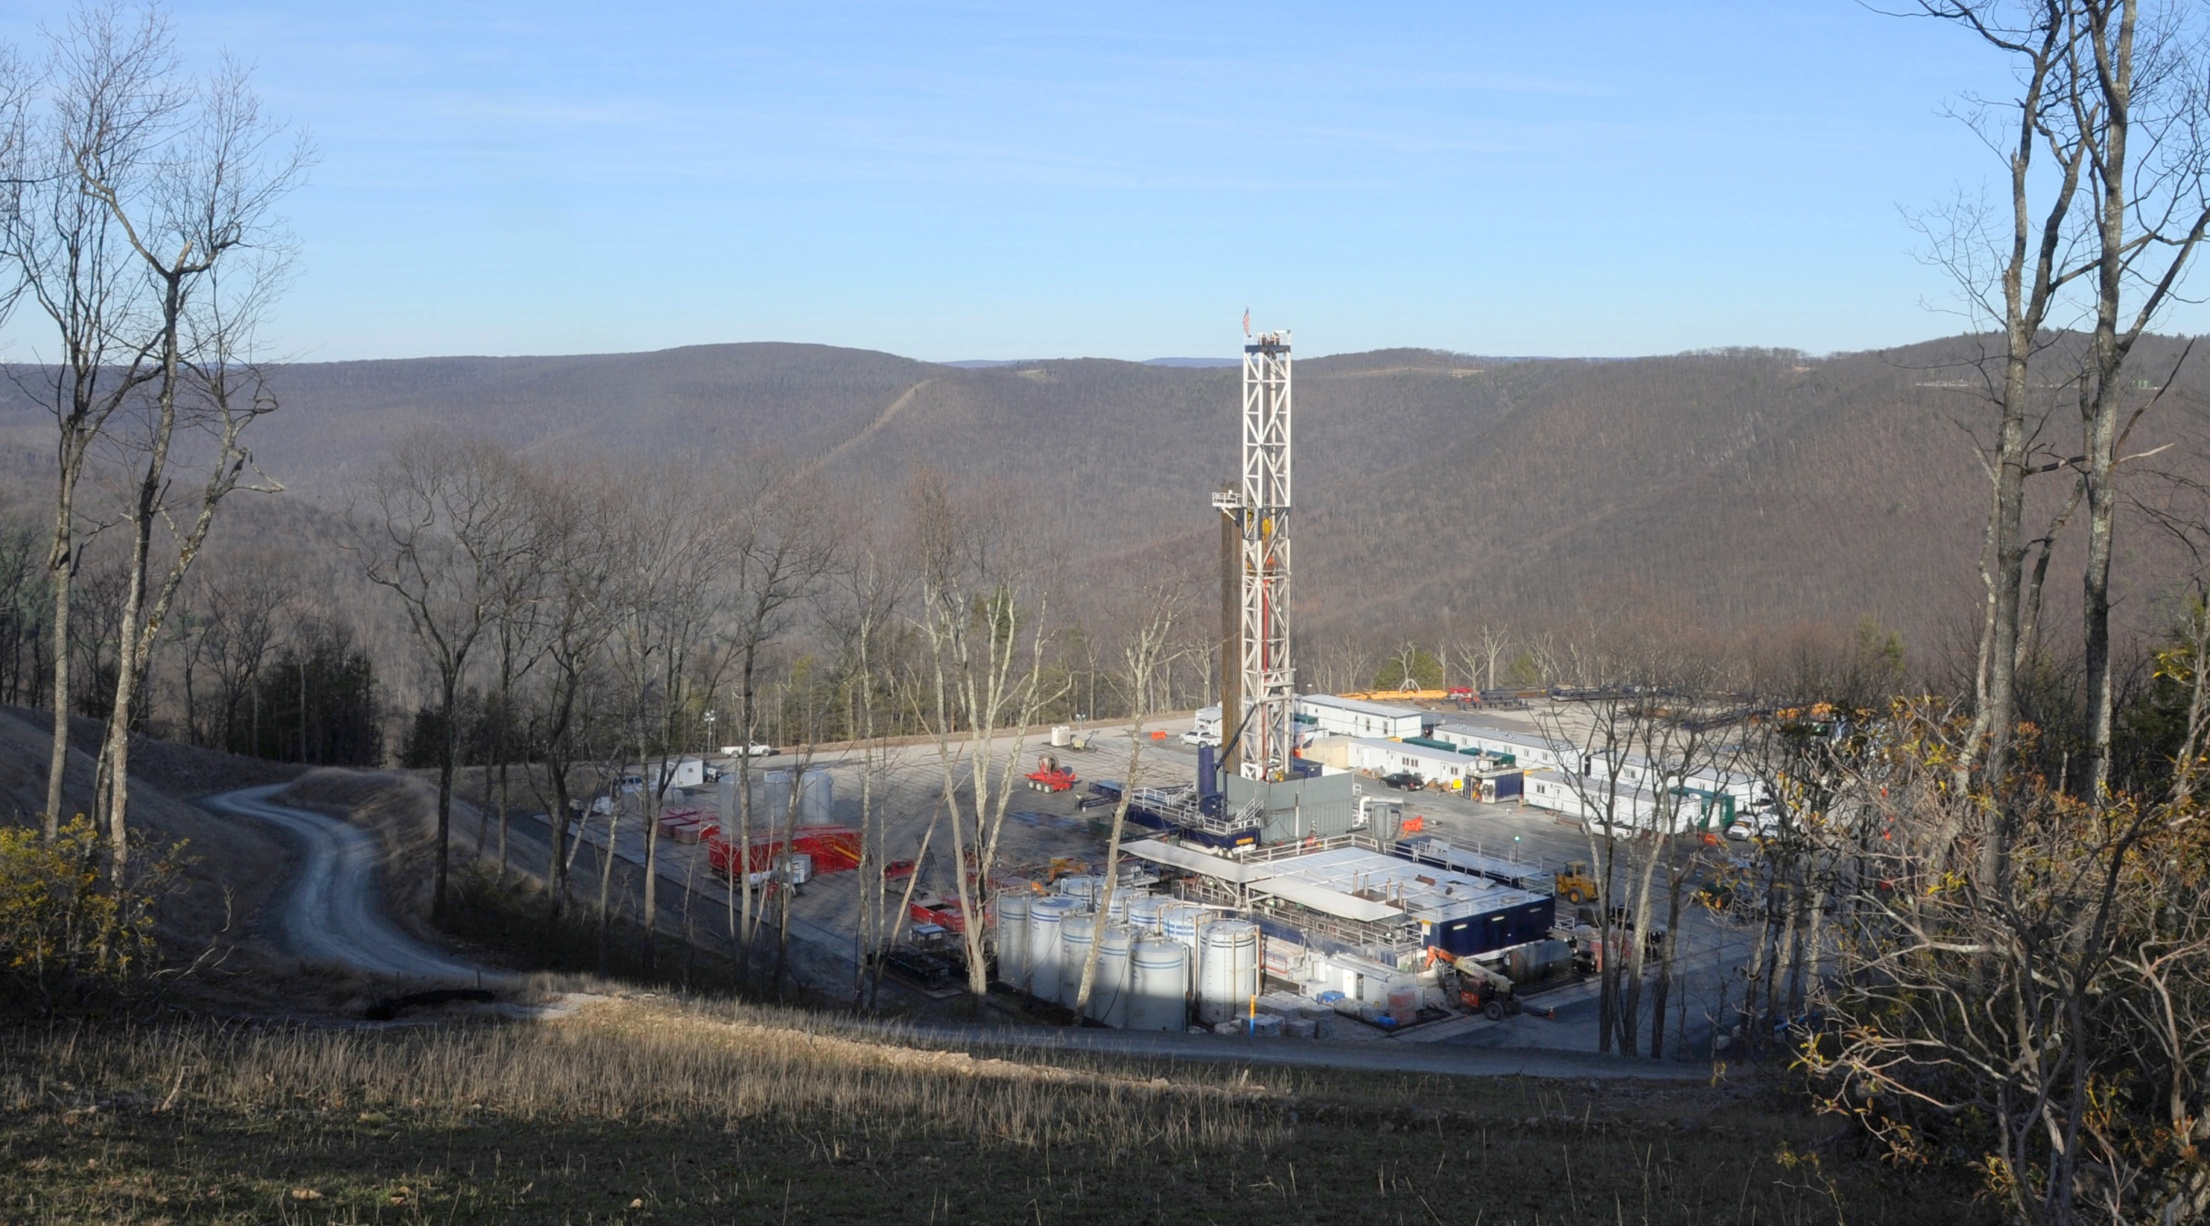 20140416PIpowerSHALE0422biz A well-site for Seneca Resources, Inc., the exploration and production segment of National Fuel Gas Company, of Houston, TX sits in the Loyalsock State Forest in Lycoming County. Ten wells are being drilled at this pad situated on Hagerman Mountain.